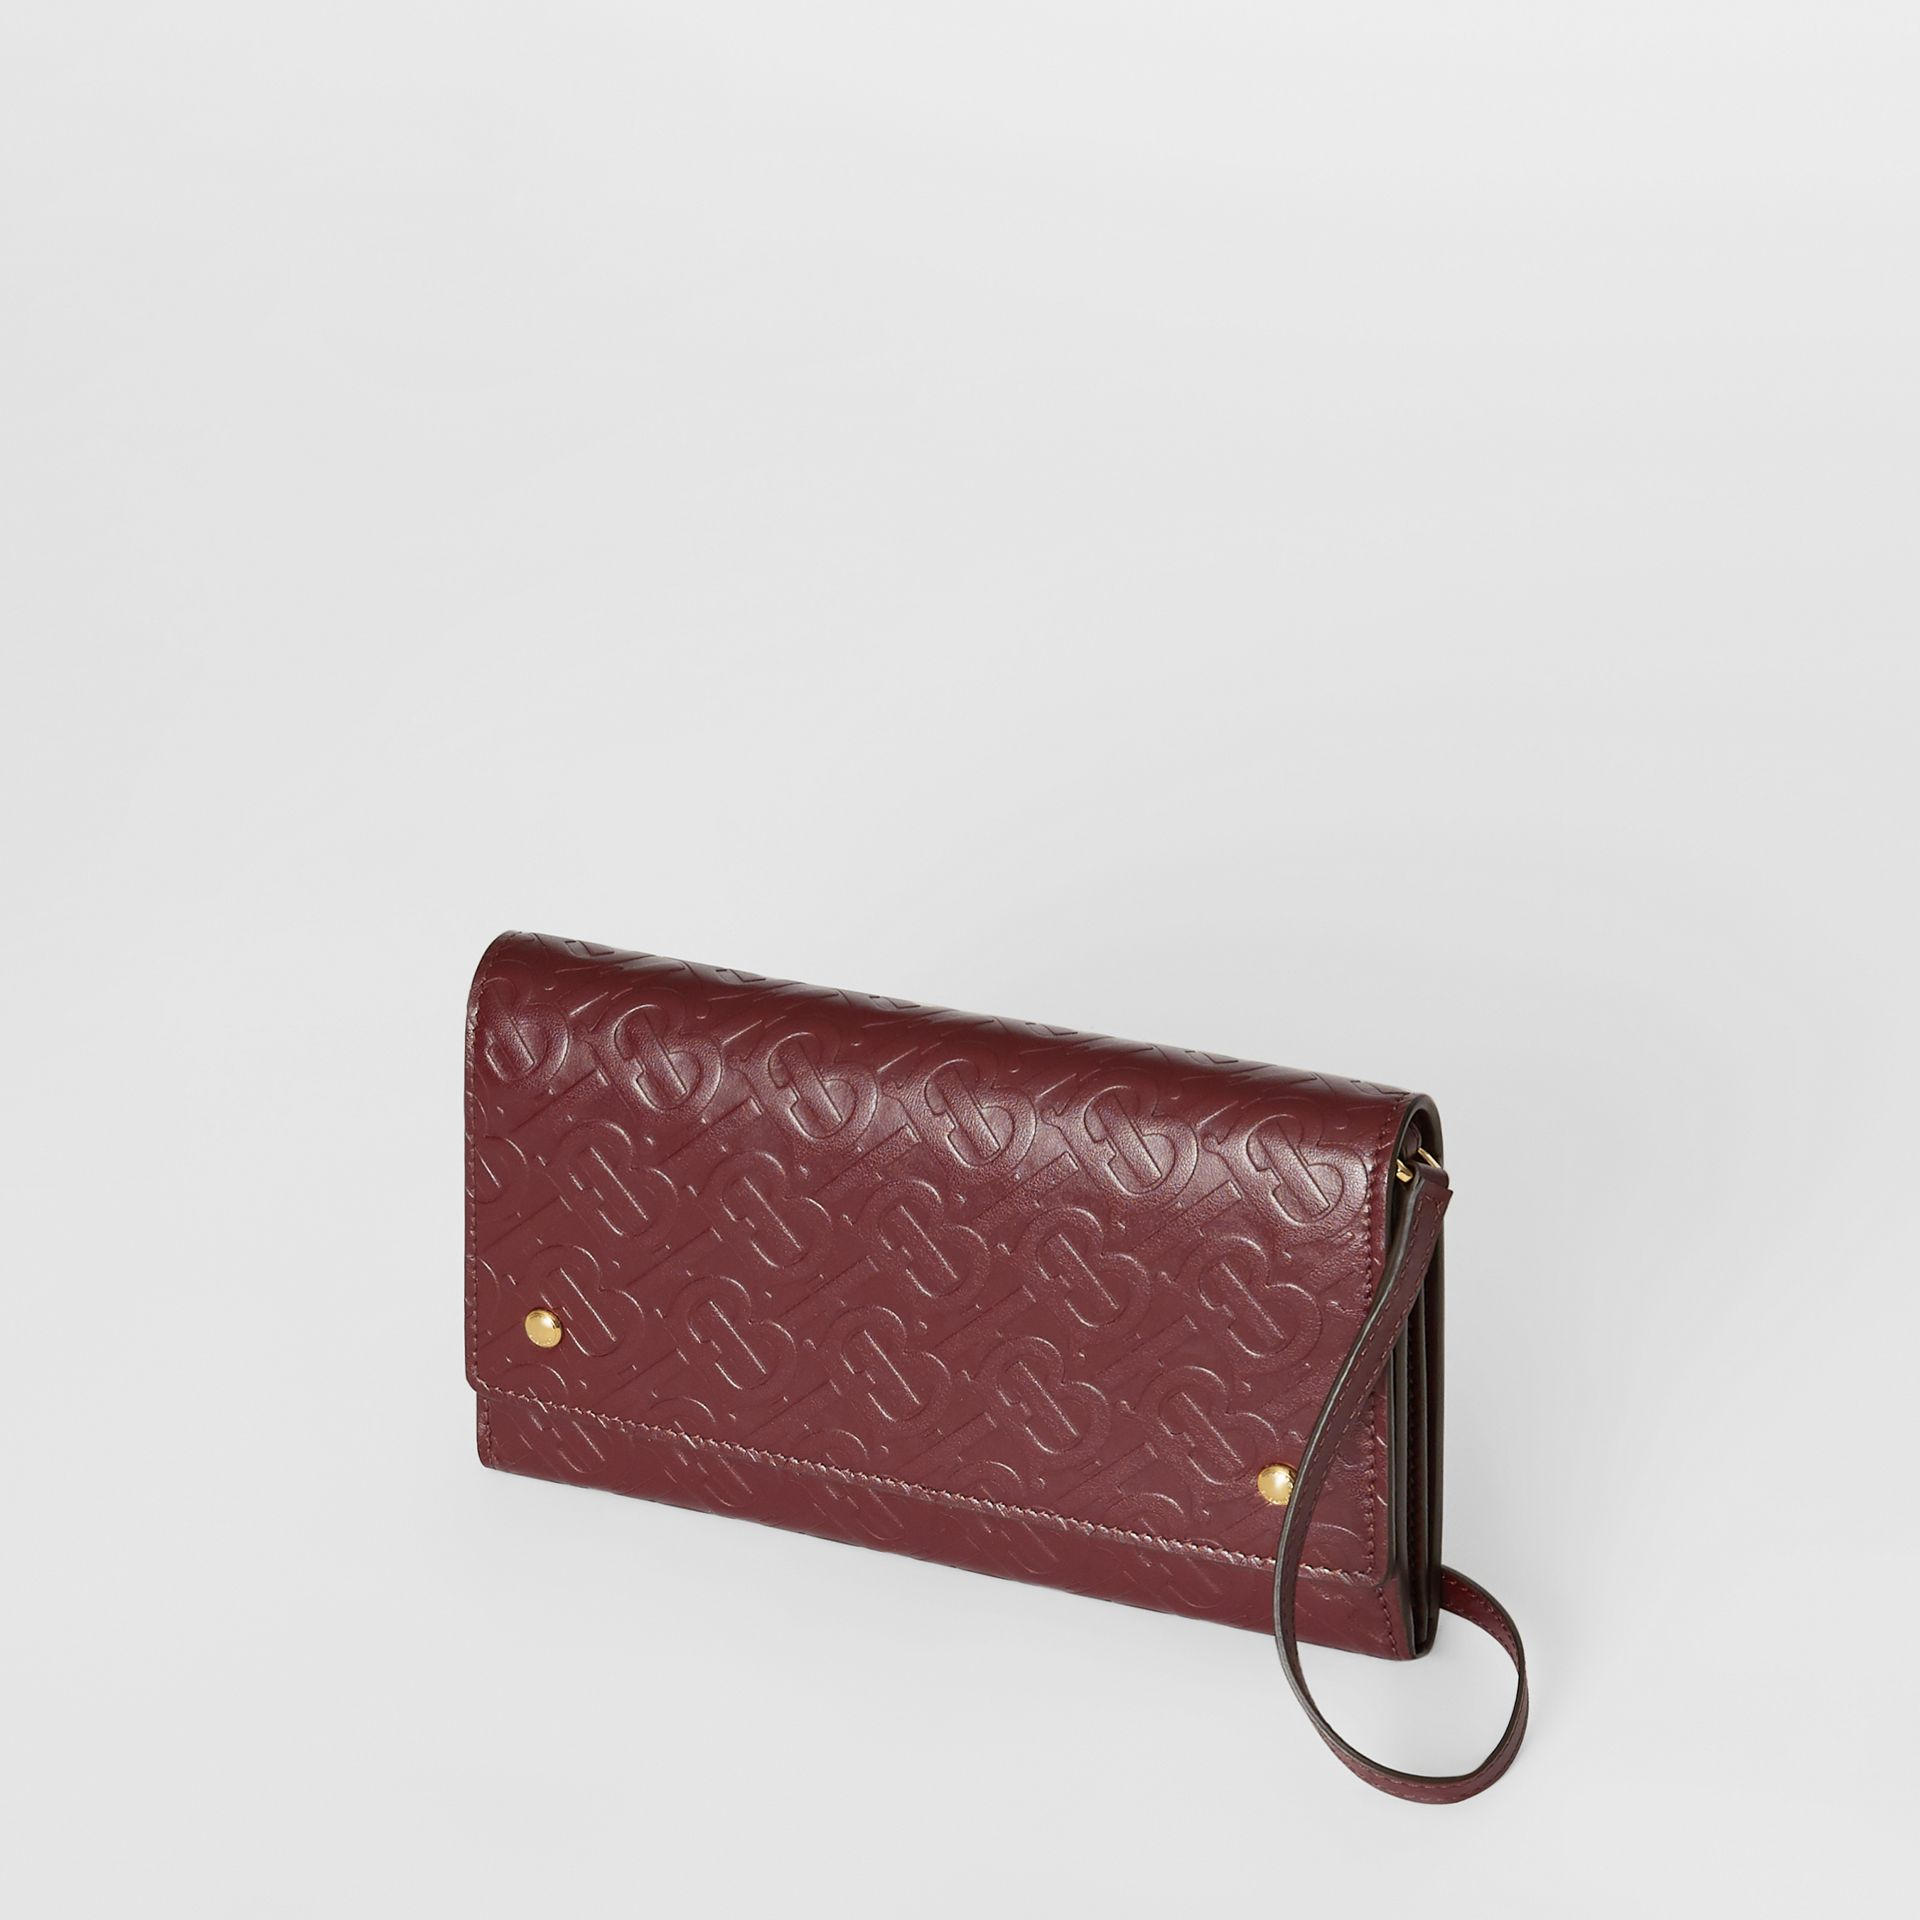 Monogram Leather Wallet with Detachable Strap in Oxblood - Women | Burberry Singapore - gallery image 3